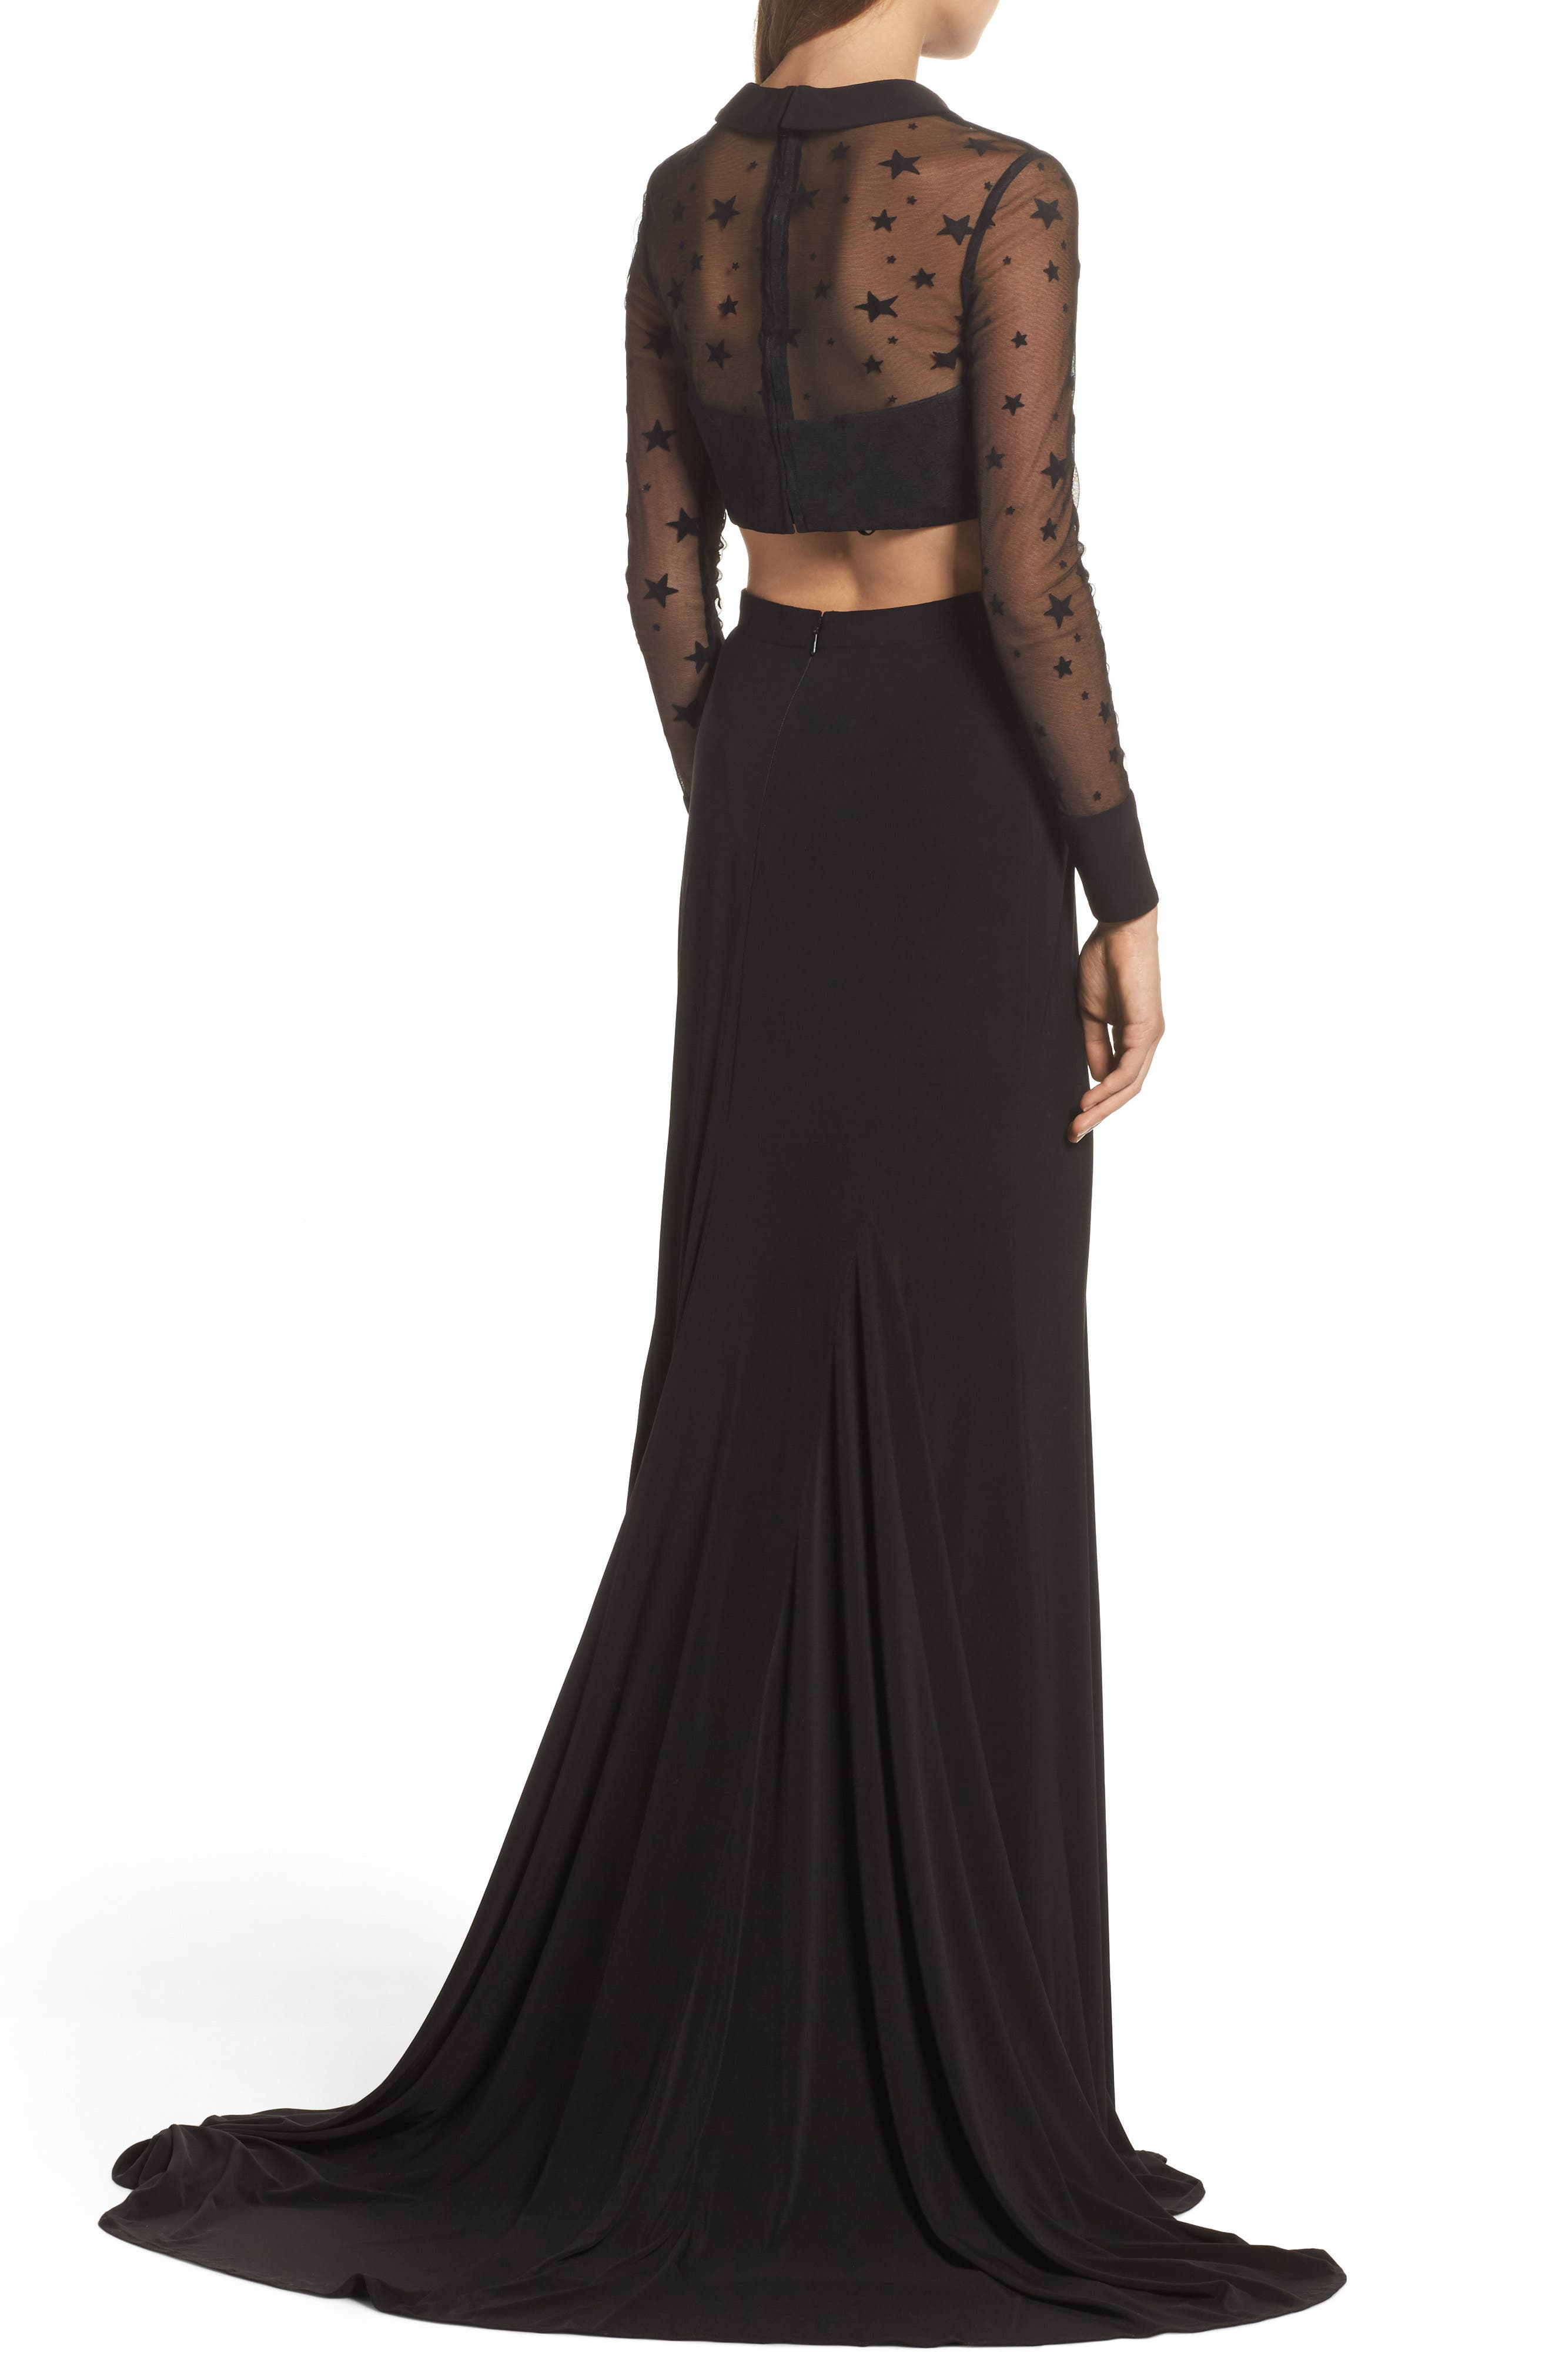 Star Mesh Two-Piece Gown,                             Alternate thumbnail 2, color,                             Black